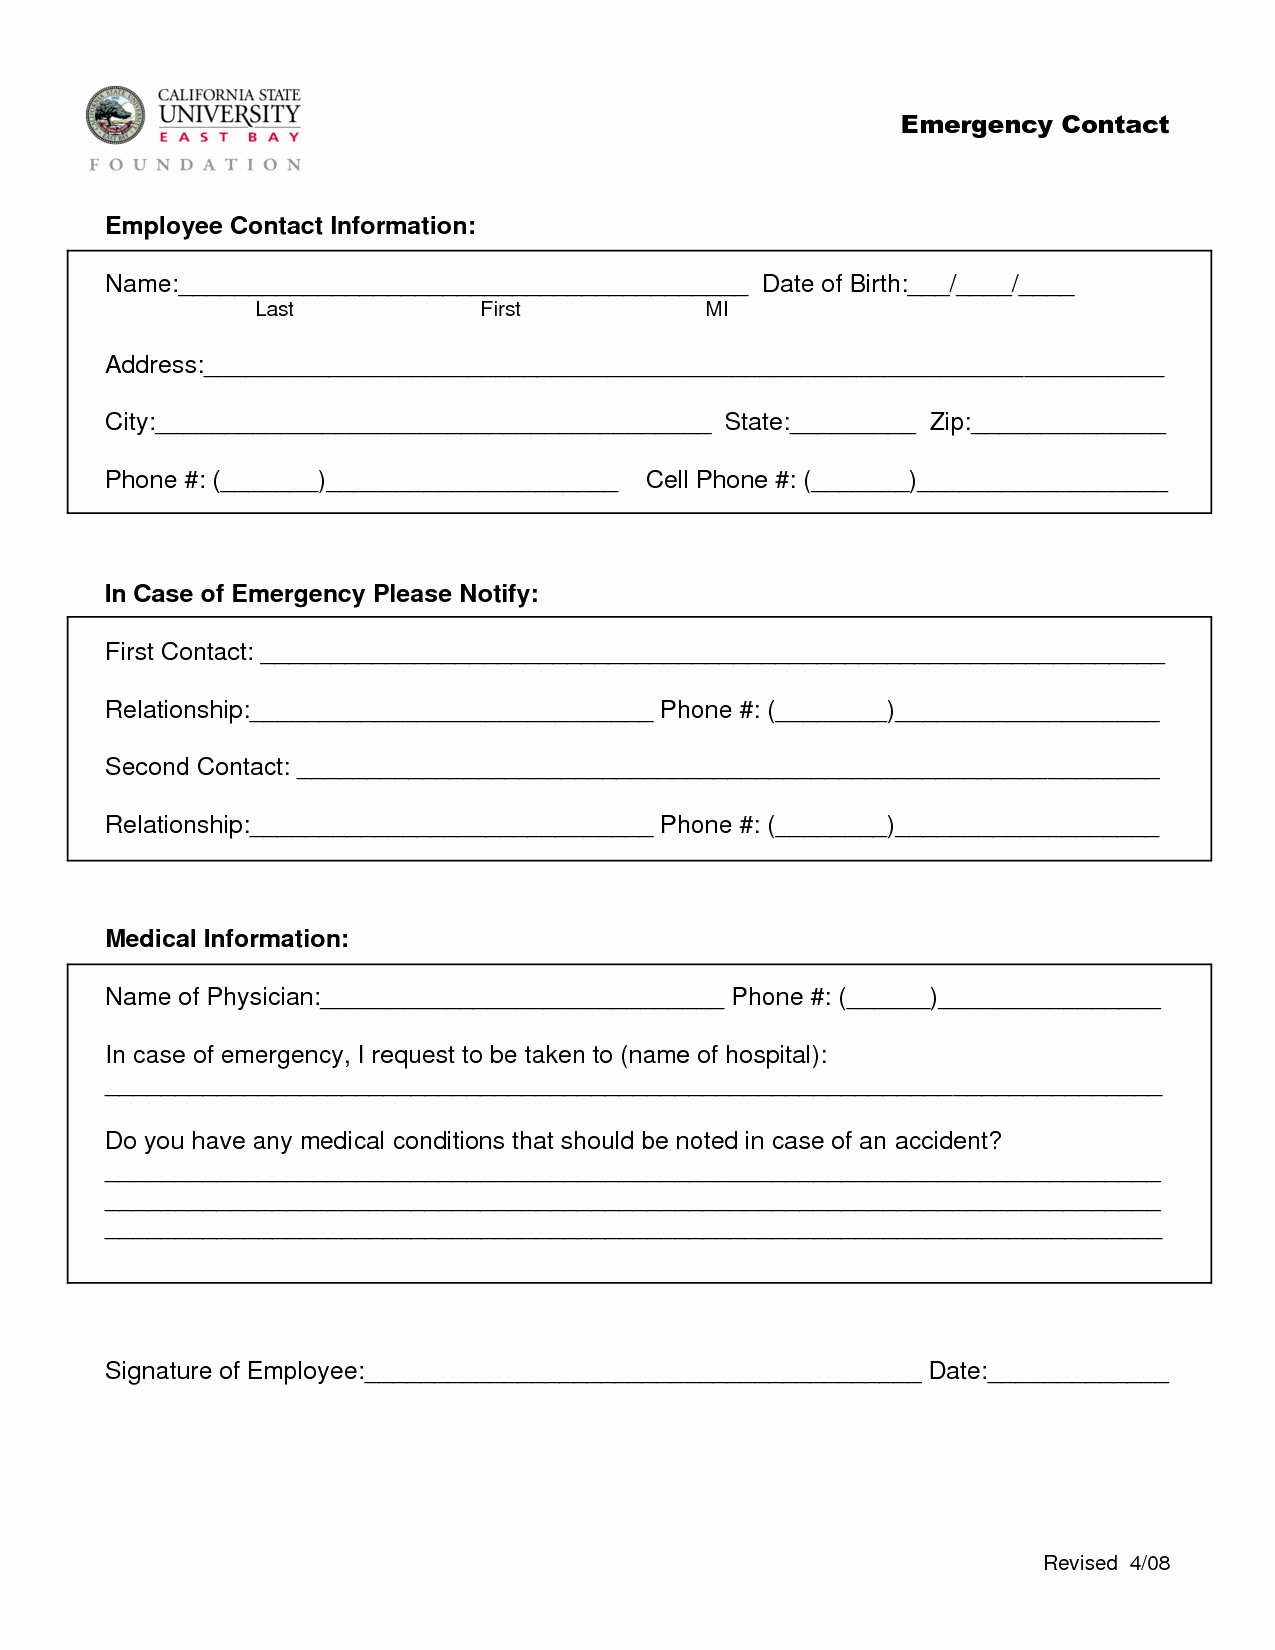 Employee Contact Information form Fresh Employee Emergency Contact form In Spanish the Best Employee